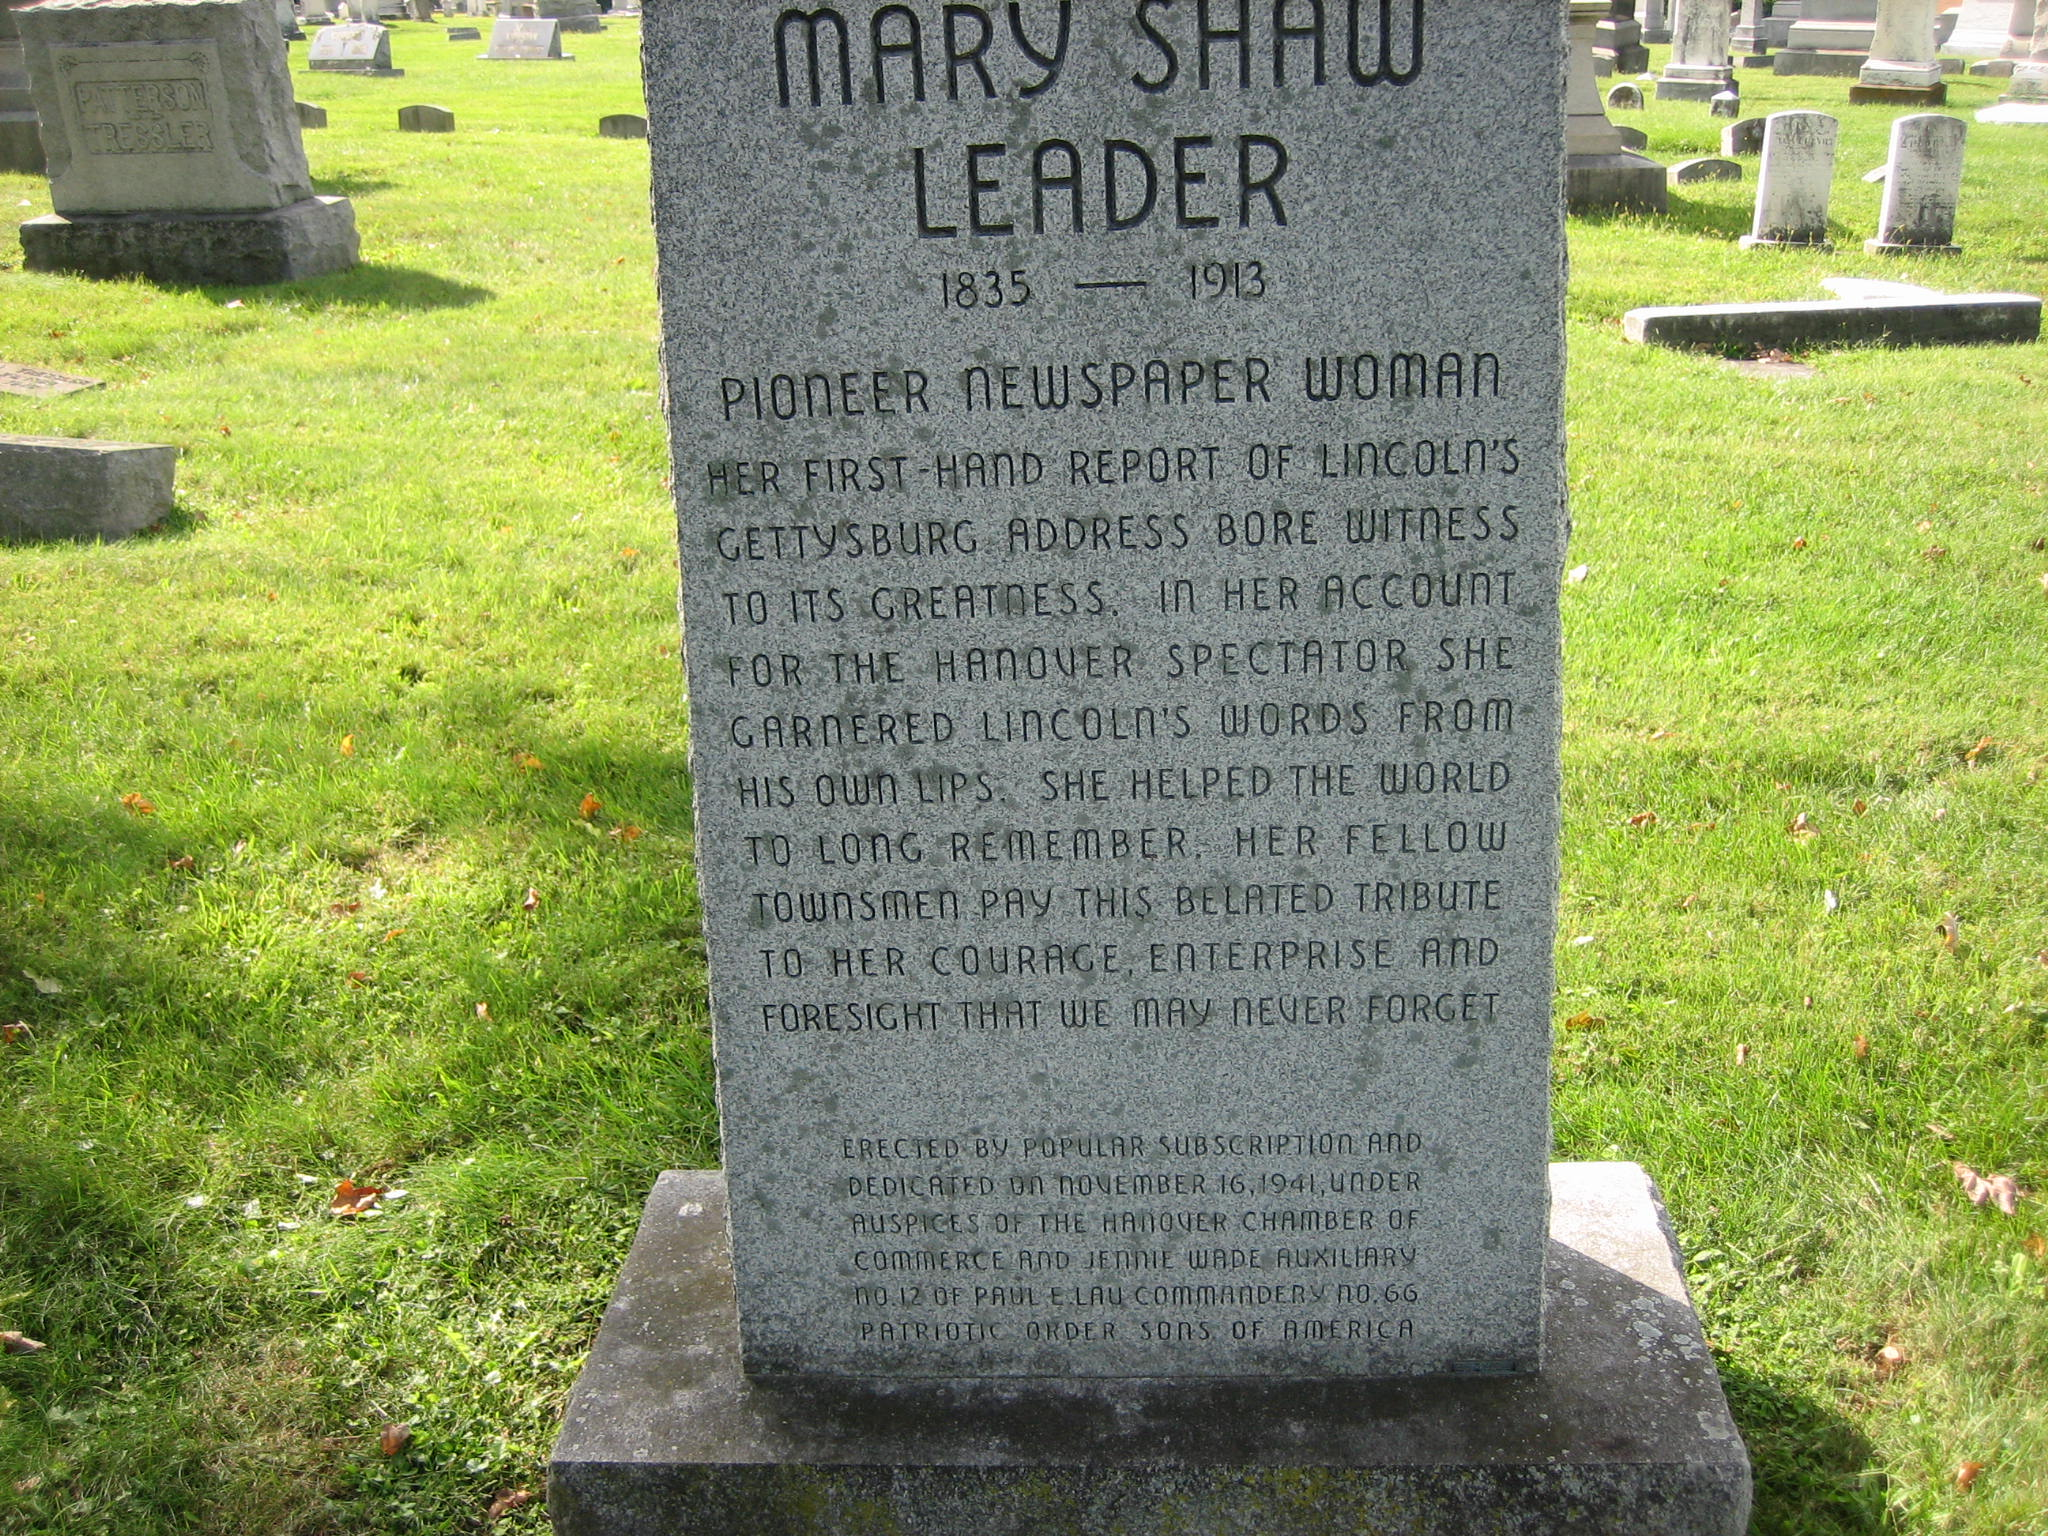 Mary Shaw Leader Female Civil War Newspaper Reporter